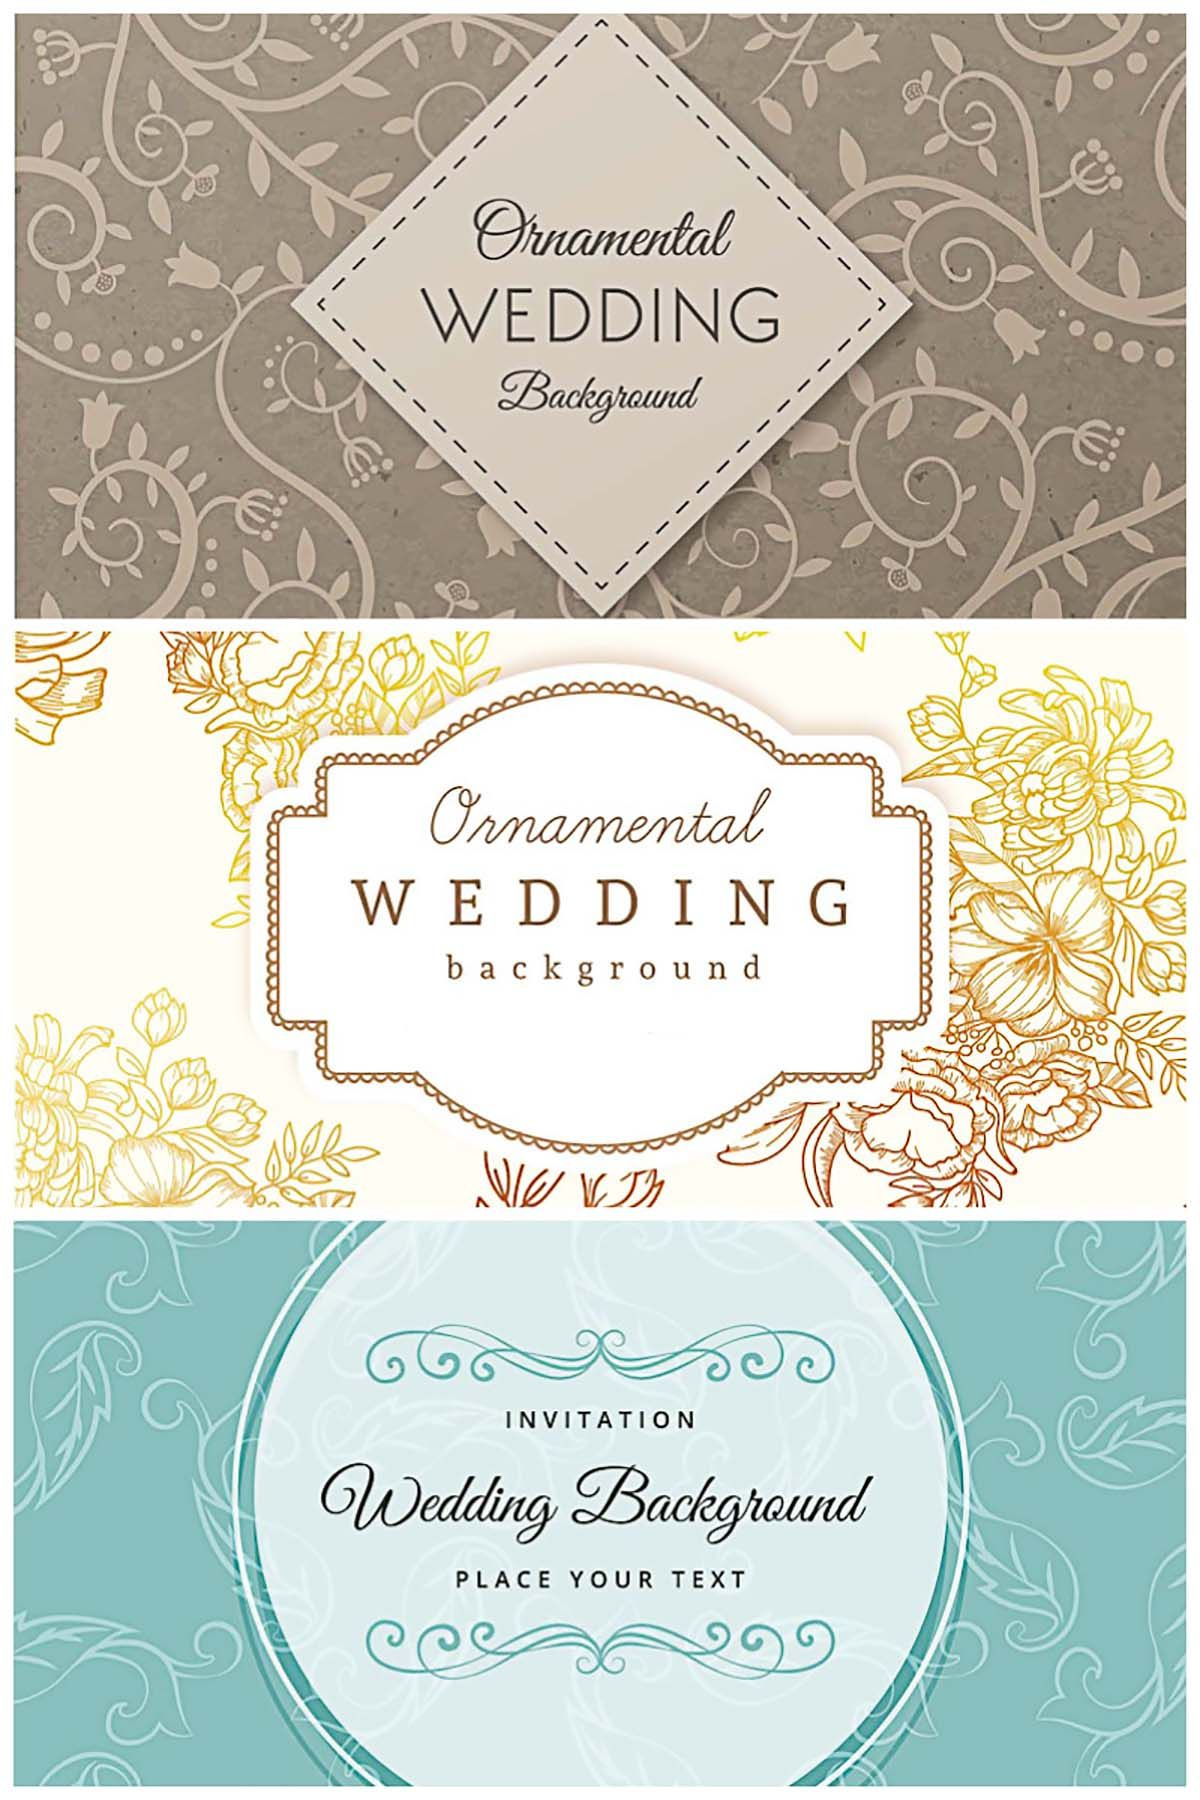 Ornamental wedding retro design background collection | Wedding ...